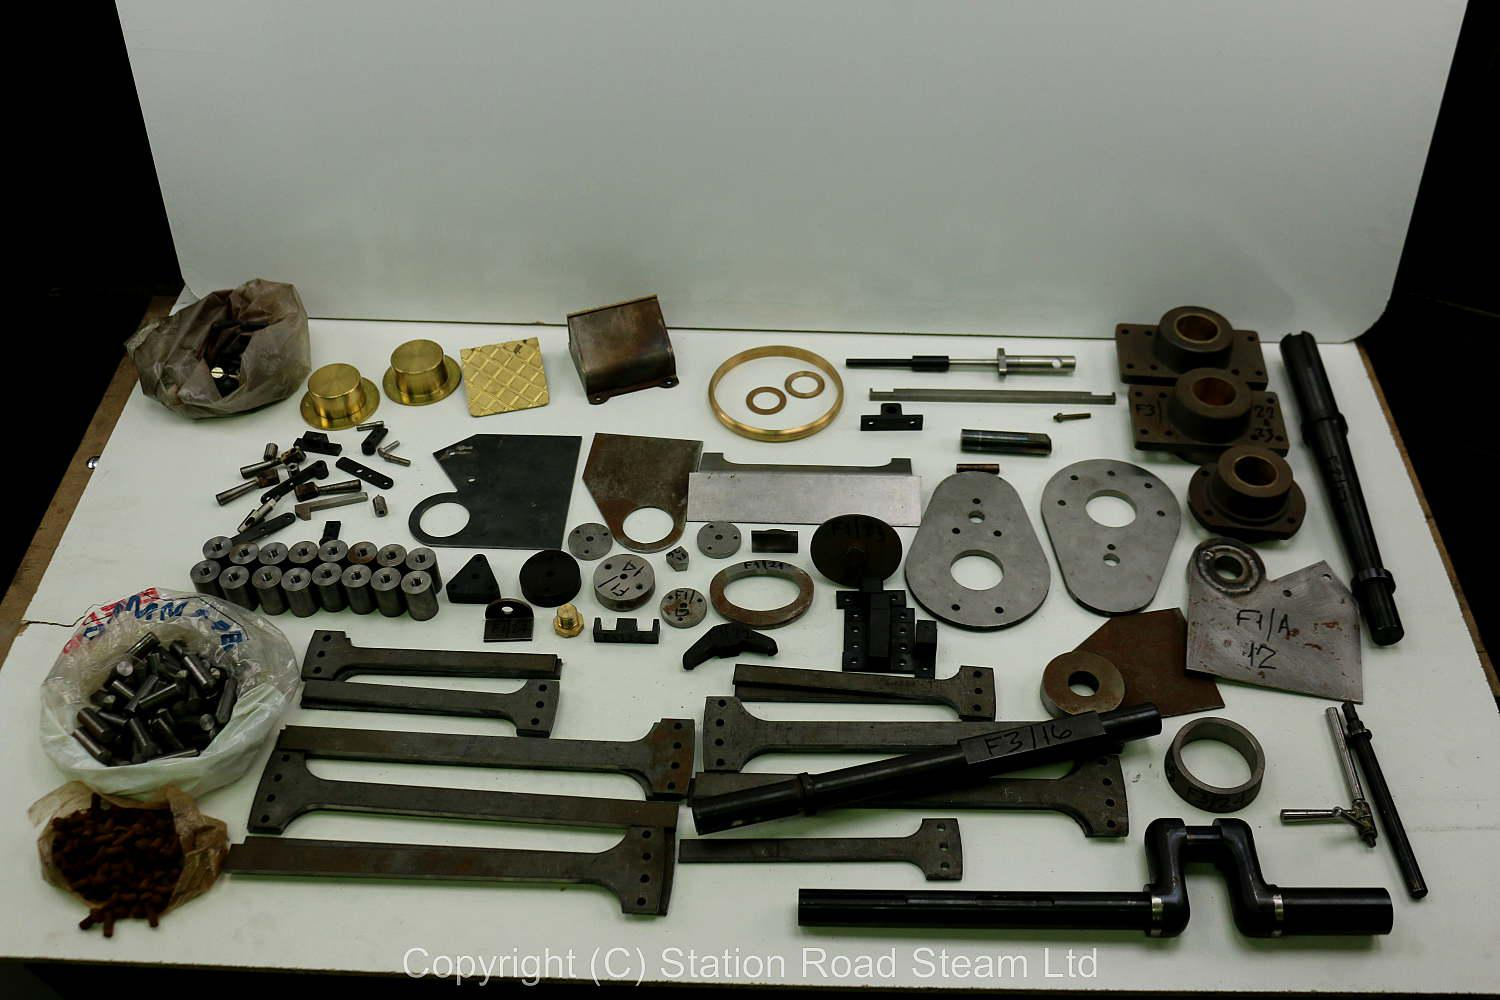 Wheels, boiler kit and professionally machined parts for 4